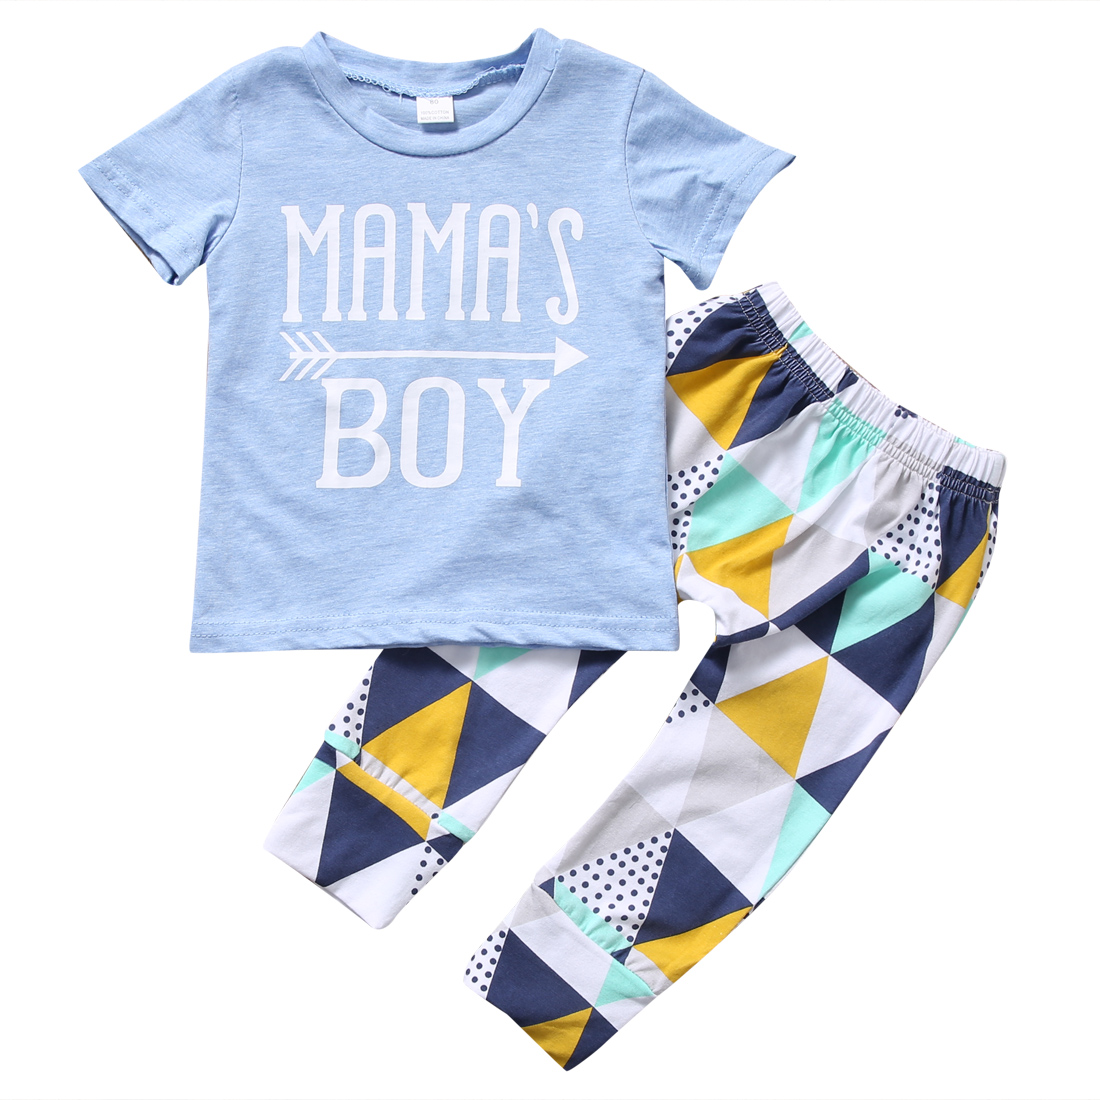 2017 Newborn Baby Boy Clothes Summer Short Sleeve Mama's Boy Cotton T-shirt Tops Pant 2PCS Outfit Toddler Kids Clothing Set summer baby boy clothes set cotton short sleeved mickey t shirt striped pants 2pcs newborn baby girl clothing set sport suits